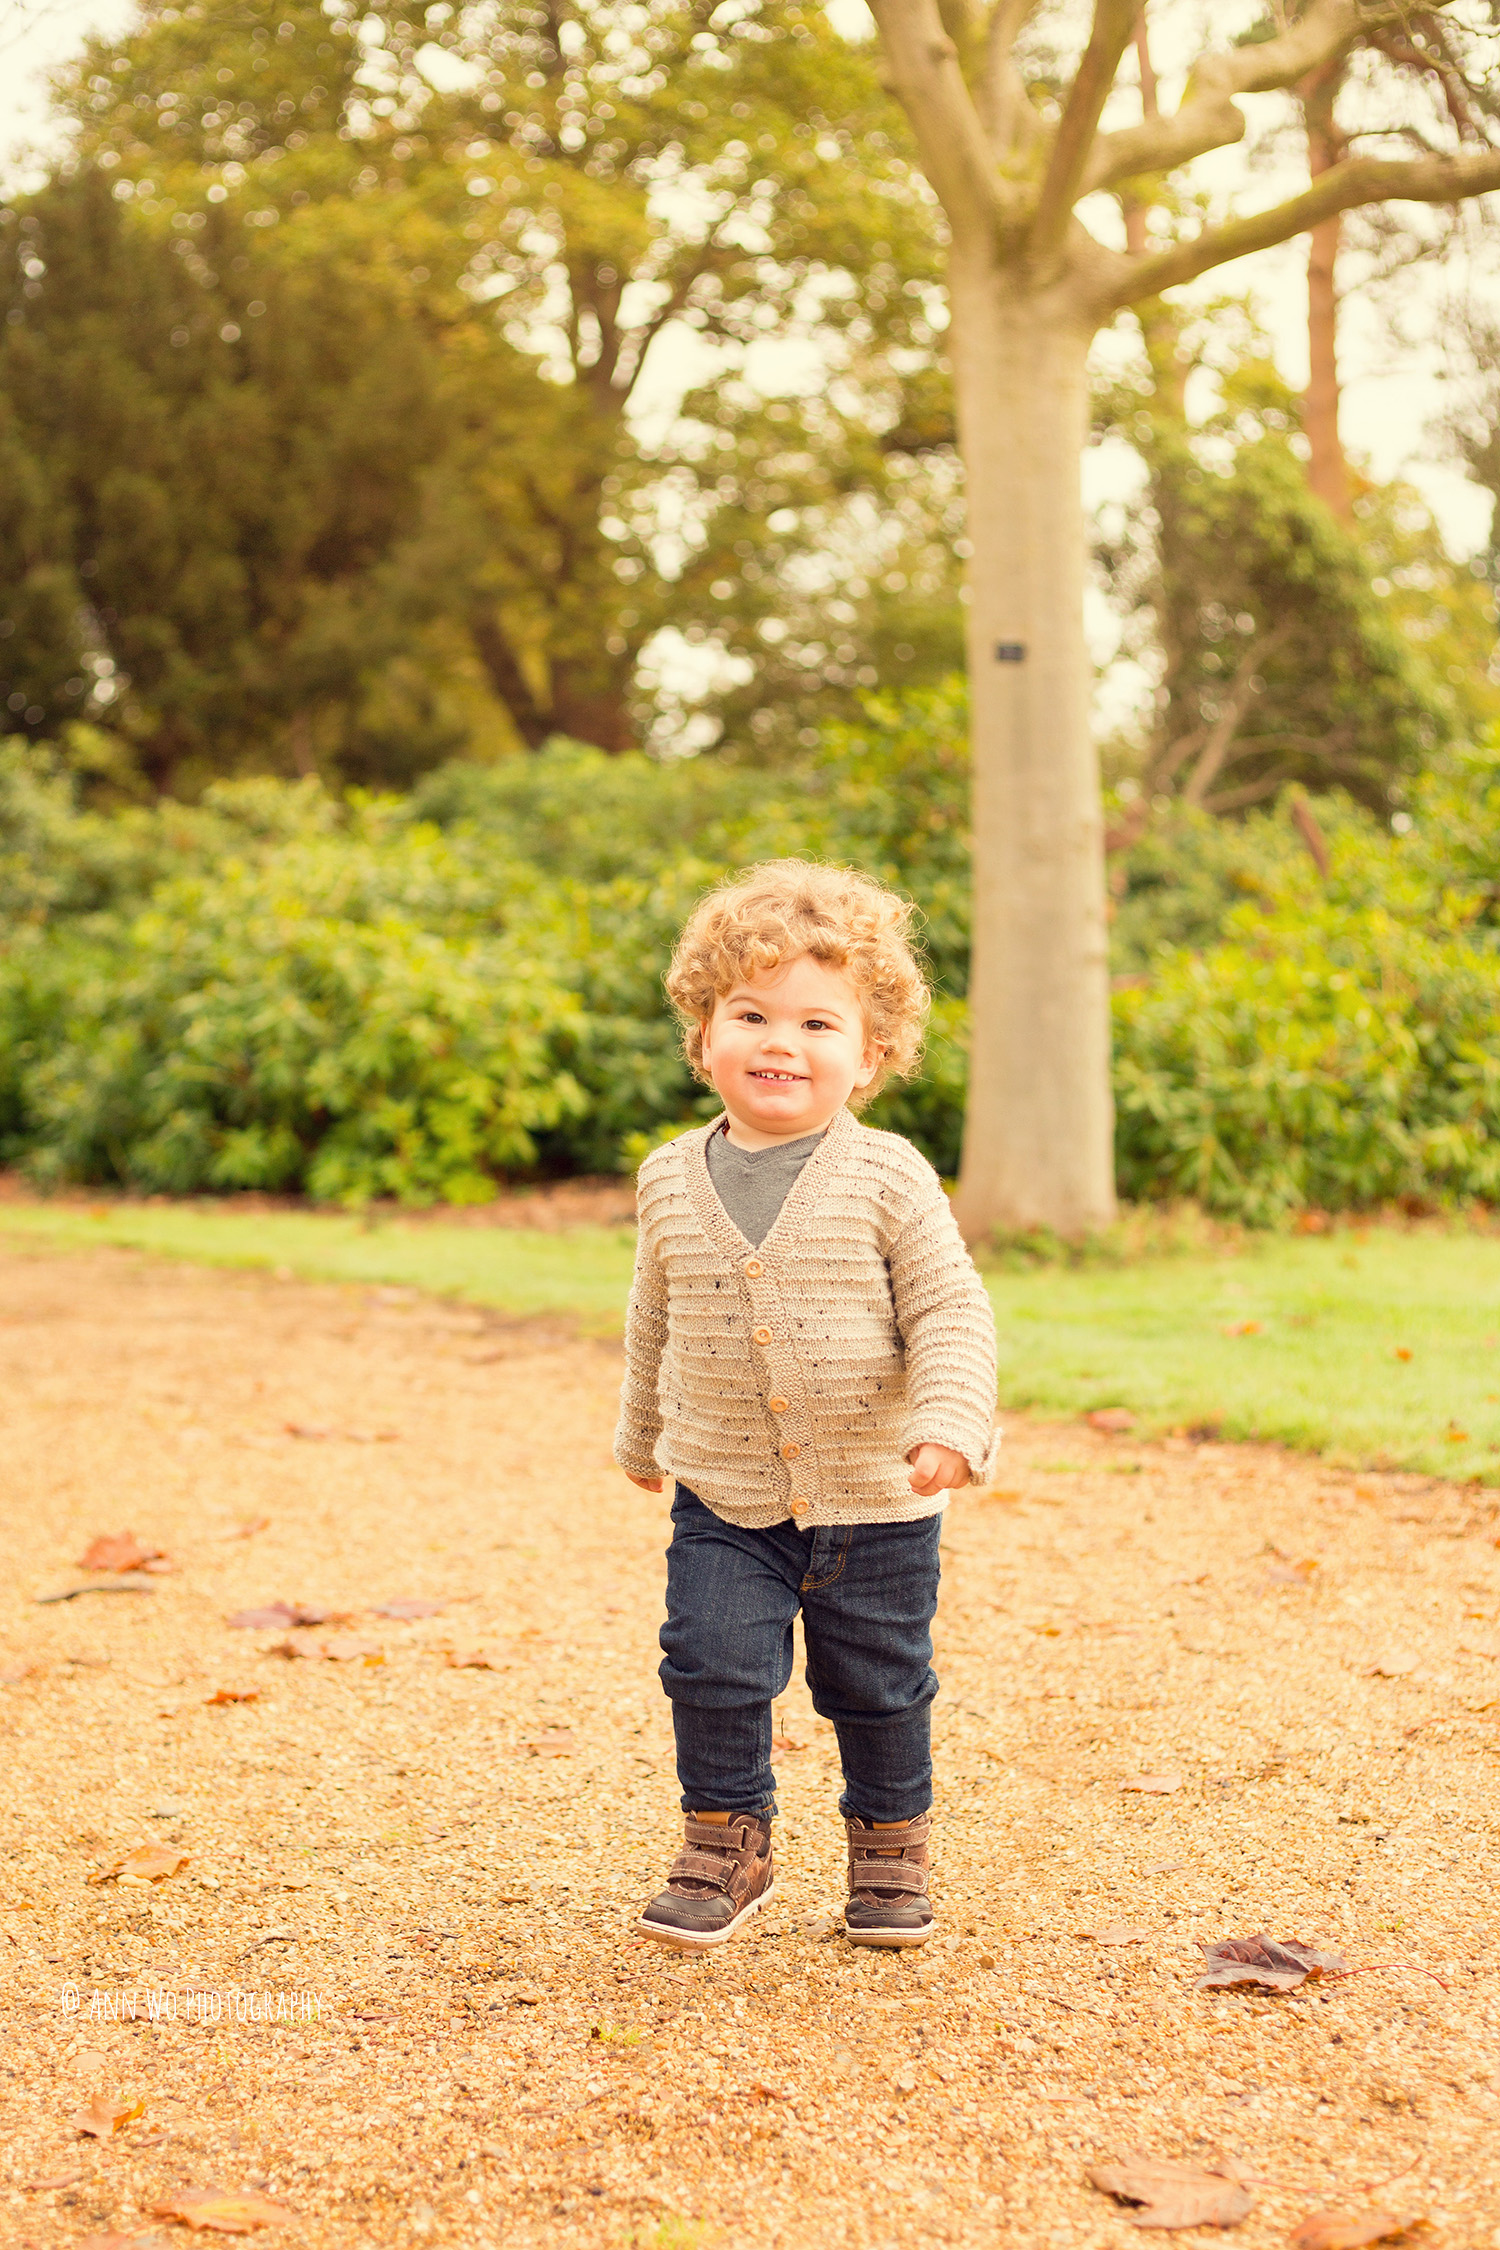 ann-wo-baby-photographer-windsor-berkshire-outdoor-family-photo-session3.jpg